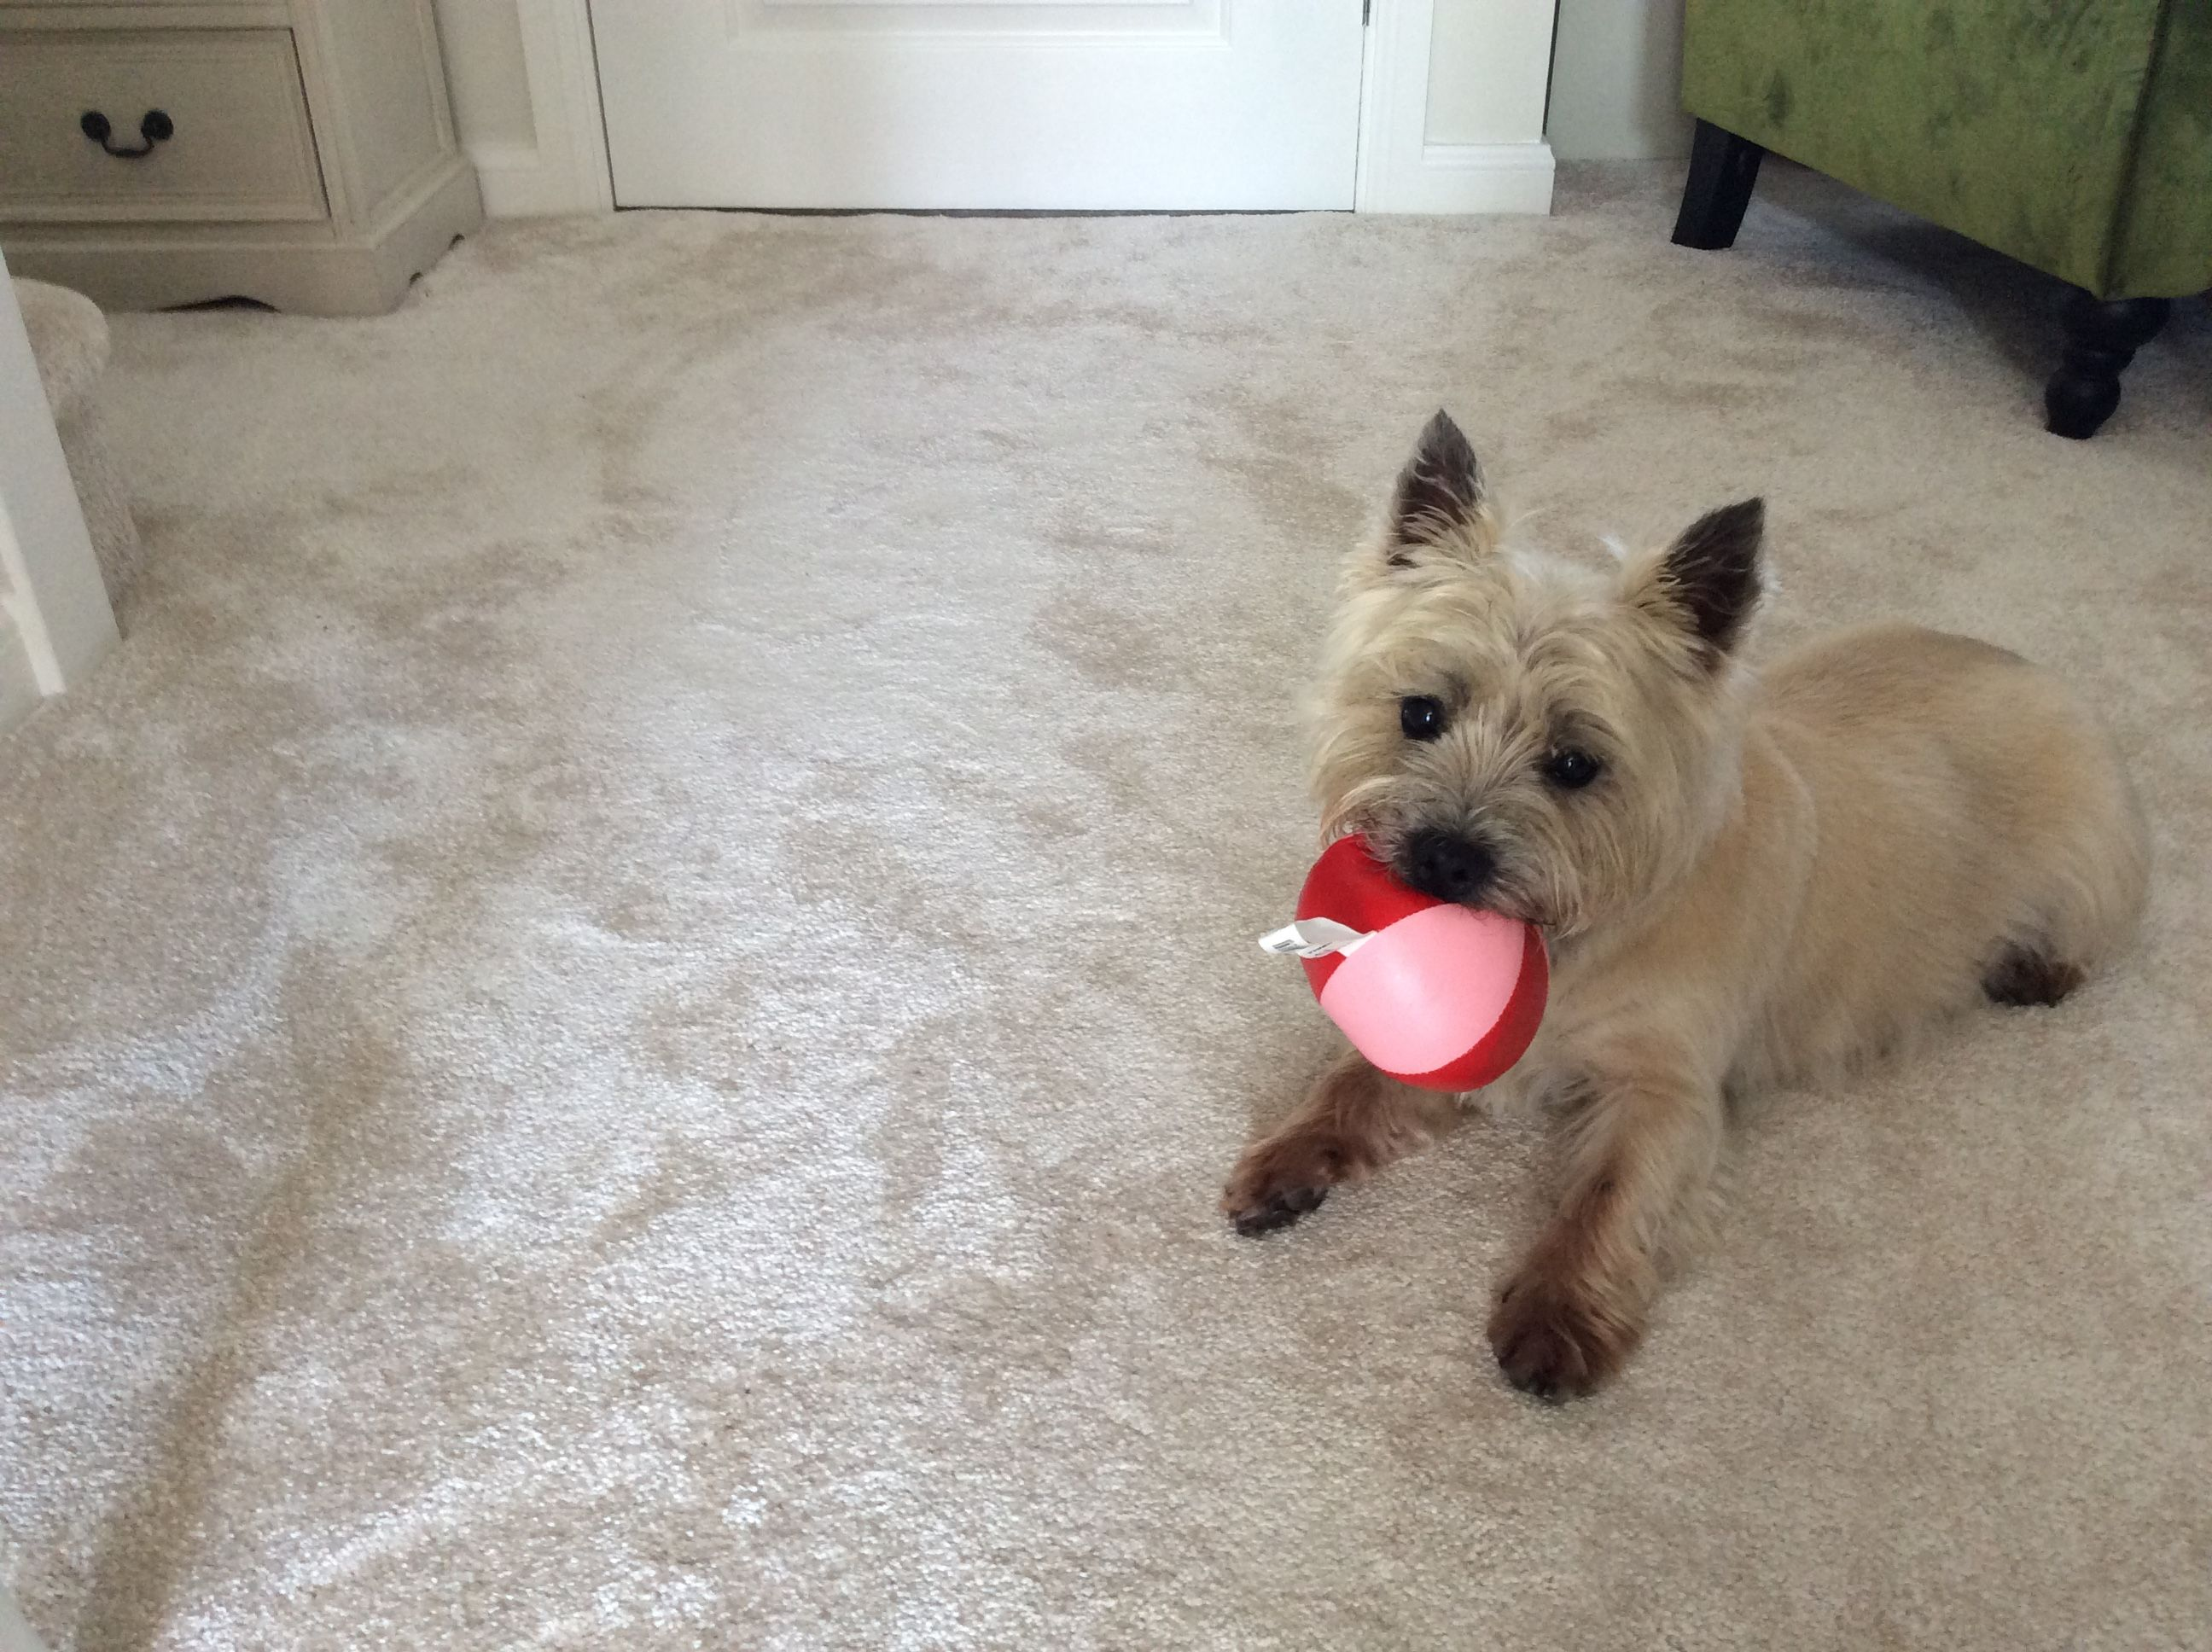 Top Cairn Terrier Ball Adorable Dog - c8f247cb0b30246ae468cee6902362dc  Snapshot_43848  .jpg